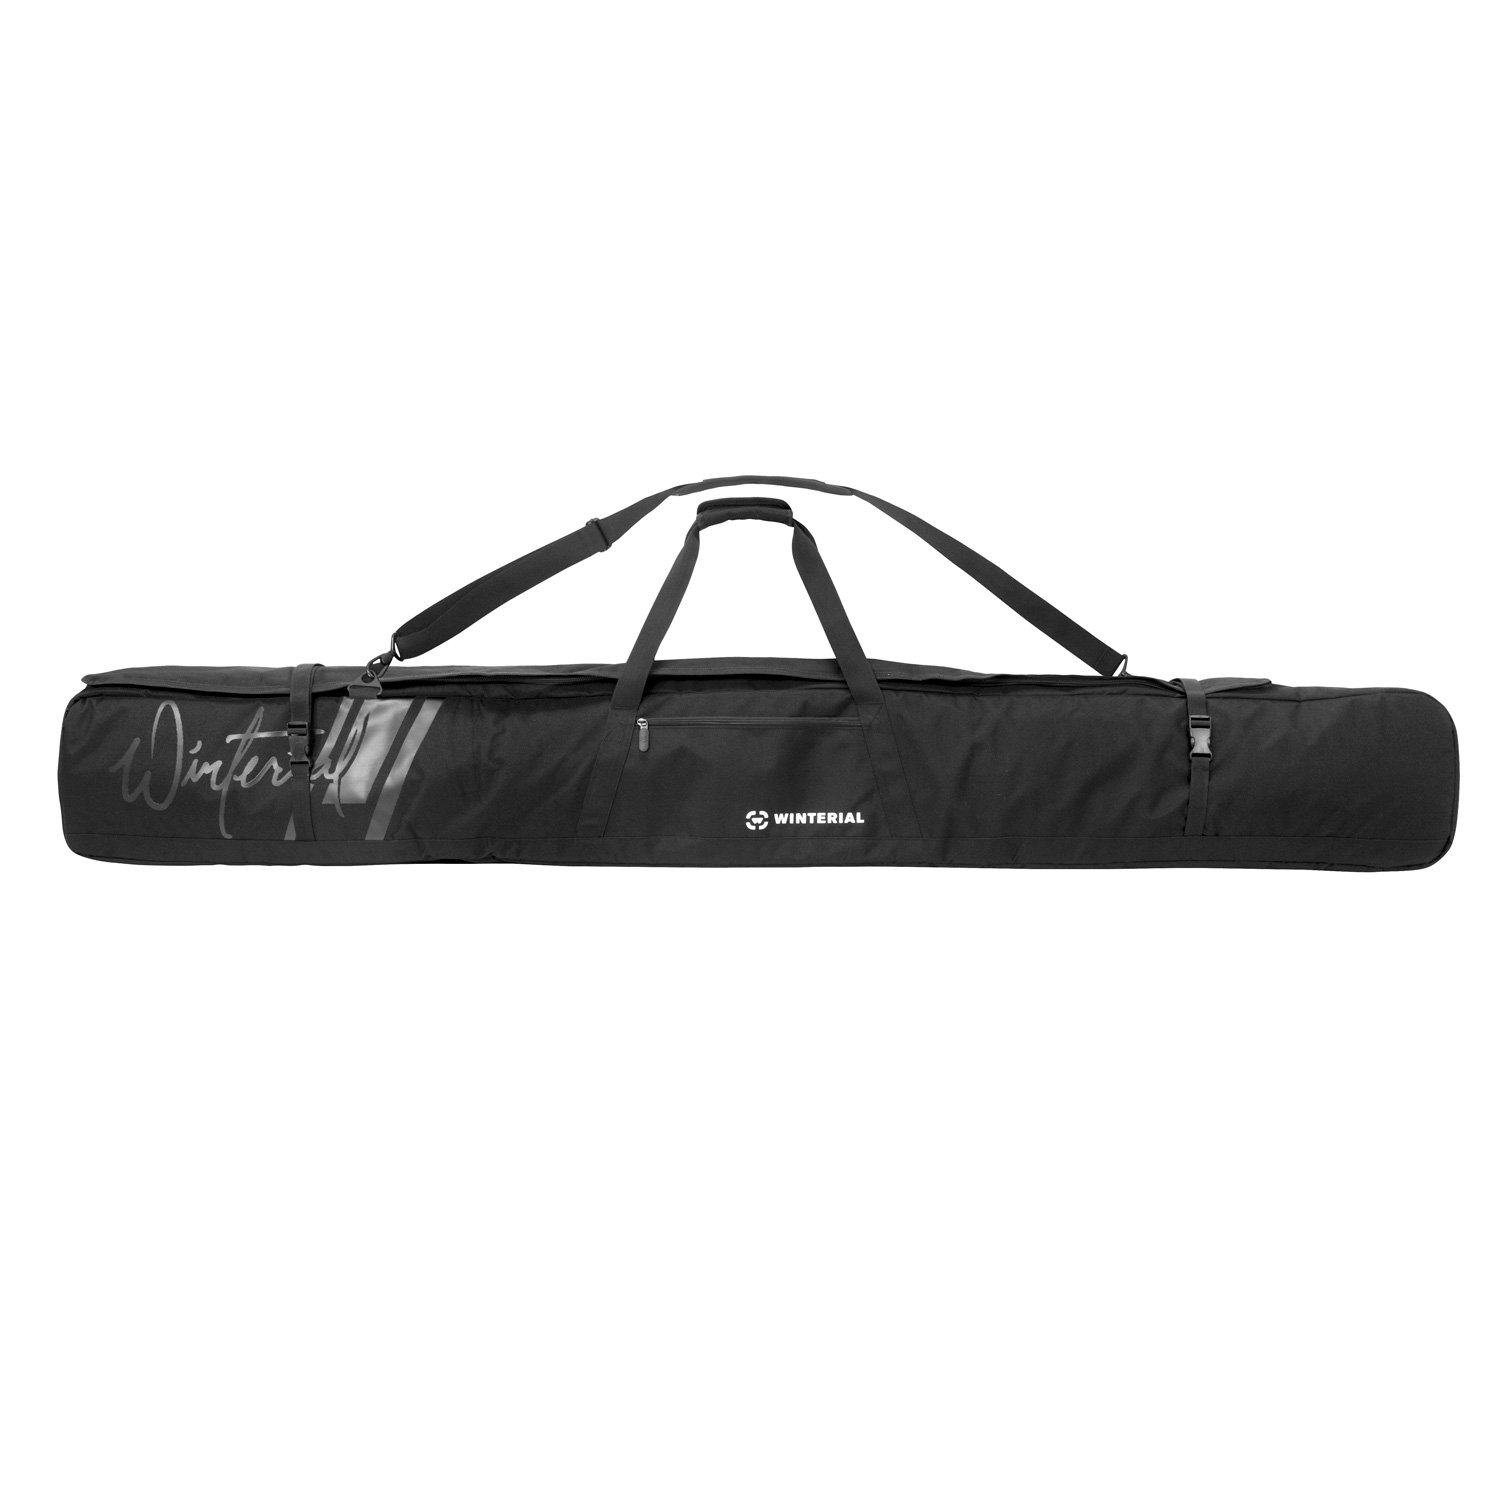 Winterial 2019 Rolling Ski Bag, 7 x 9.5 inch (193x24cm) Travel Bag with Storage Compartments, Reinforced Double Padding Perfect for Road Trips and Air Travel by Winterial